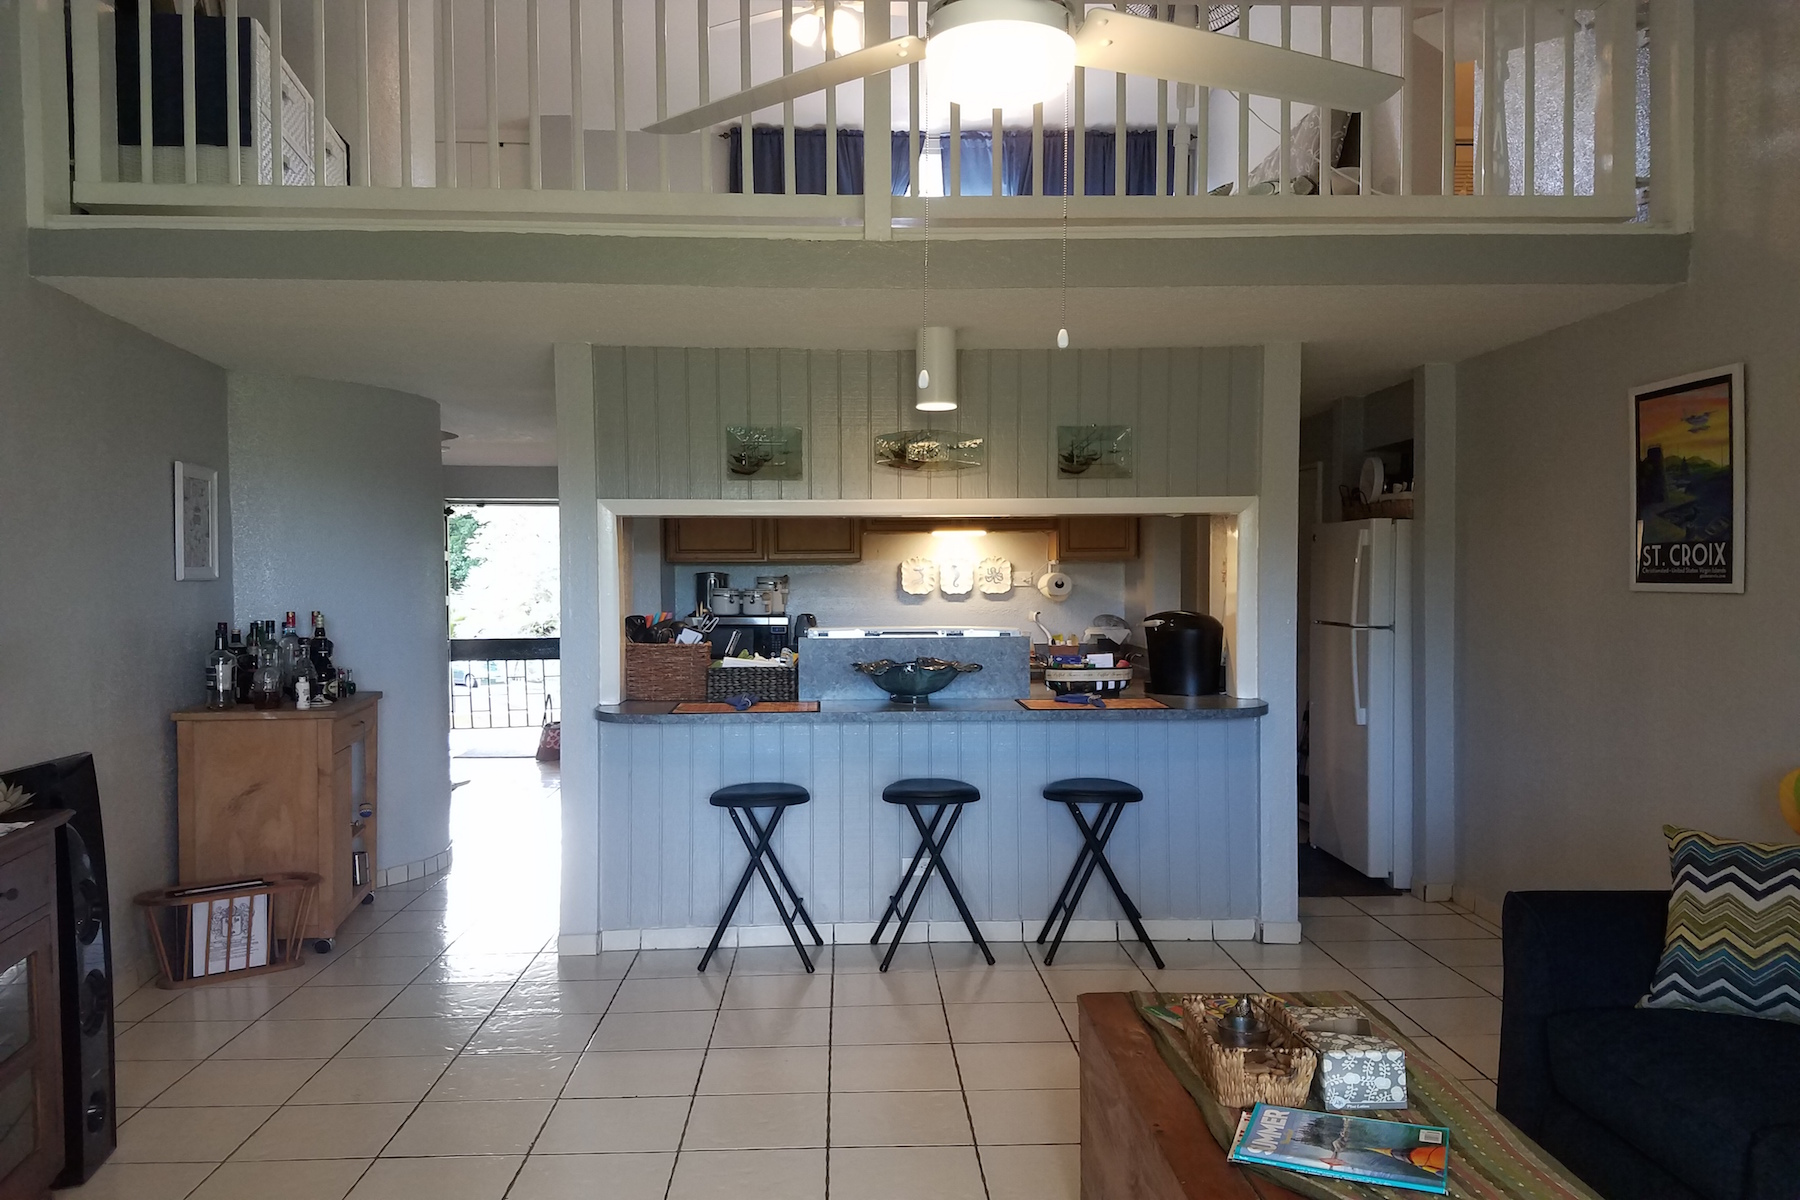 Additional photo for property listing at 325 Mill Harbour 325 Mill Harbour St Croix, Virgin Islands 00820 United States Virgin Islands